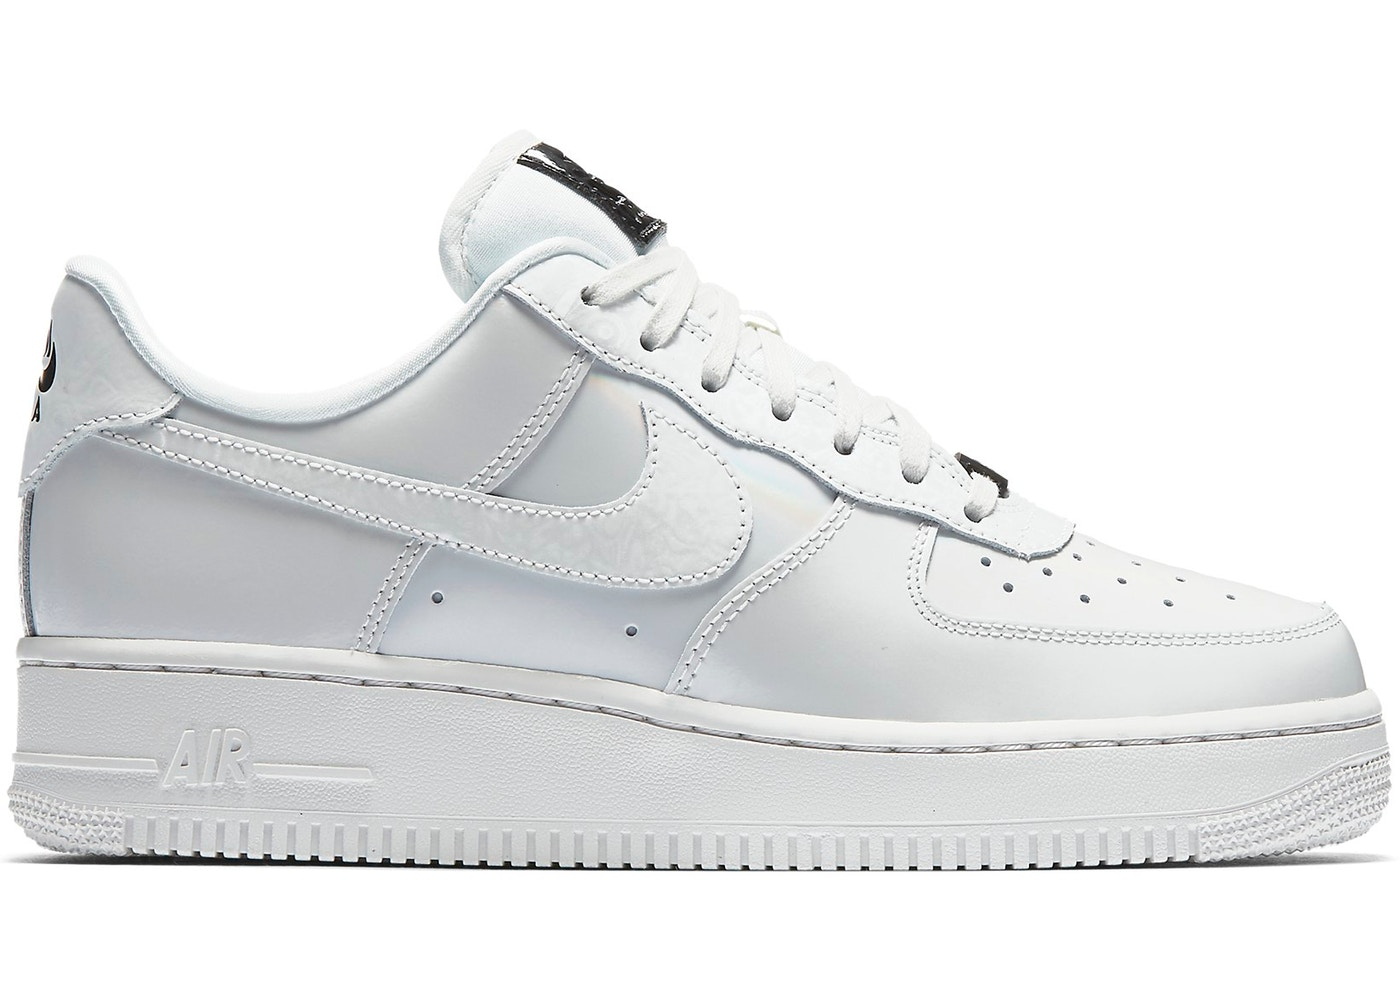 san francisco 03737 3dfe7 Air Force 1 Low Lux All-Star 2018 White (W)